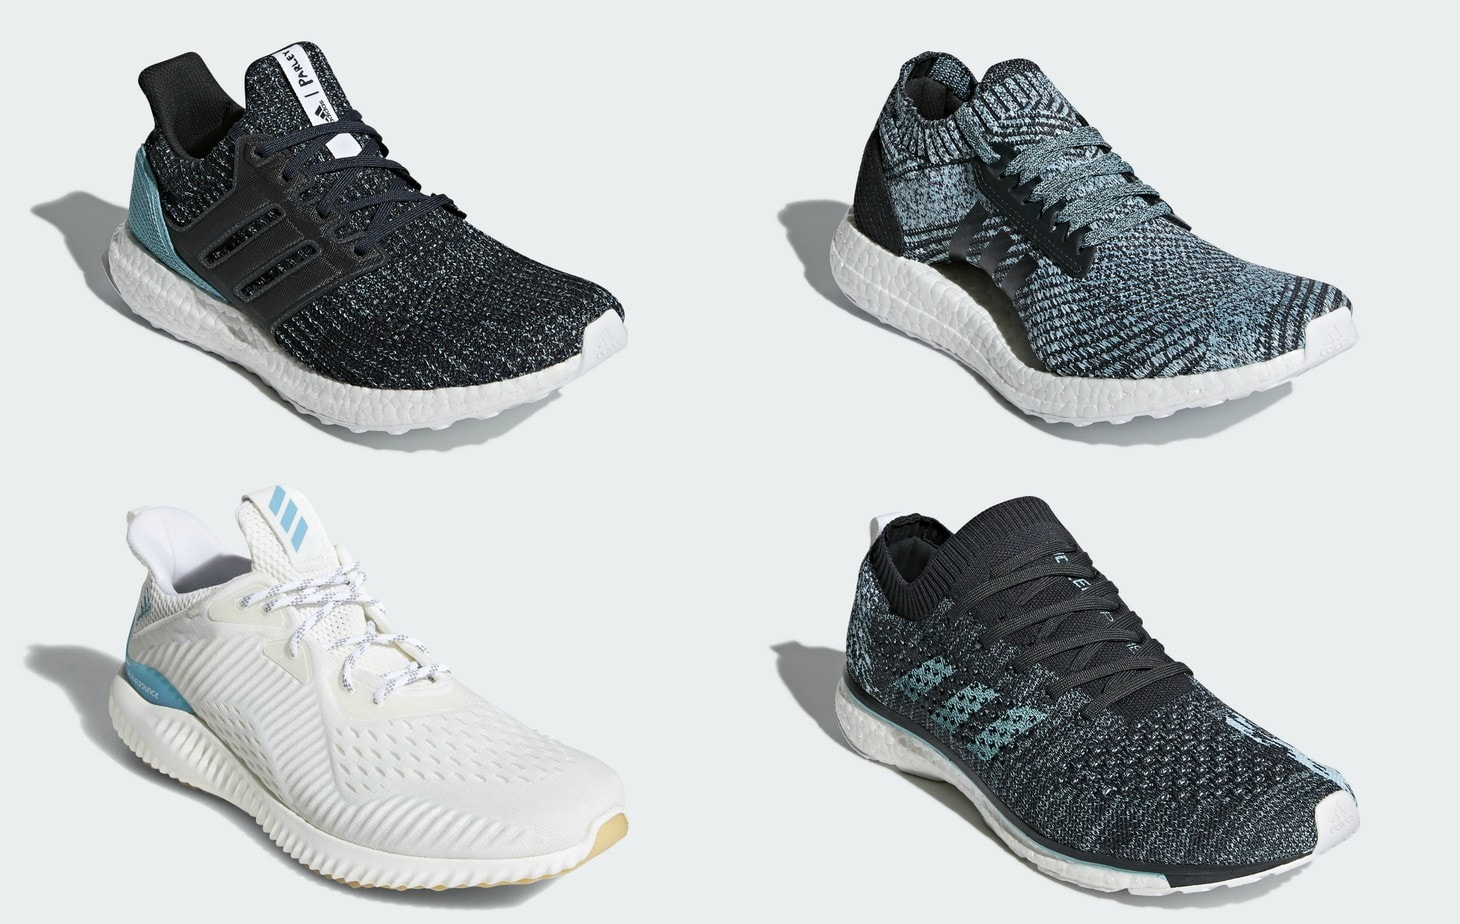 new style 54f8b 39b3e Parley and adidas have been reenergized by last years sales numbers in  their quest to save the oceans. Now, new information details an April  release larger ...